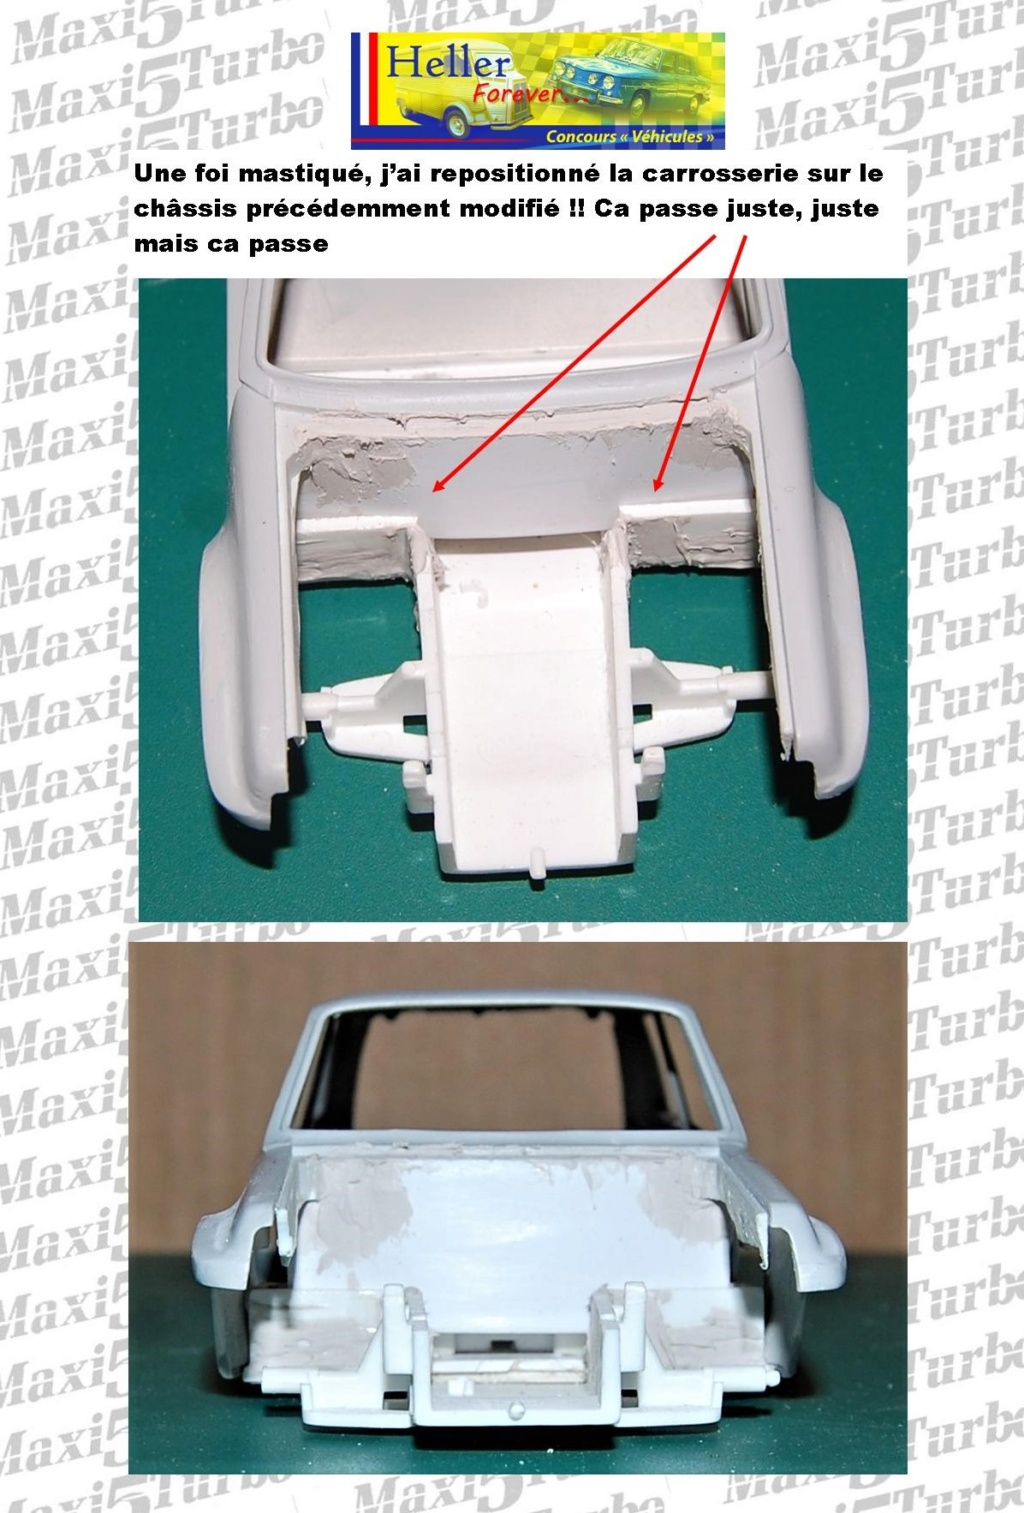 (1/24) Renault 5 Maxi turbo Ref 80717 ( Hors delai ) - Page 7 11010